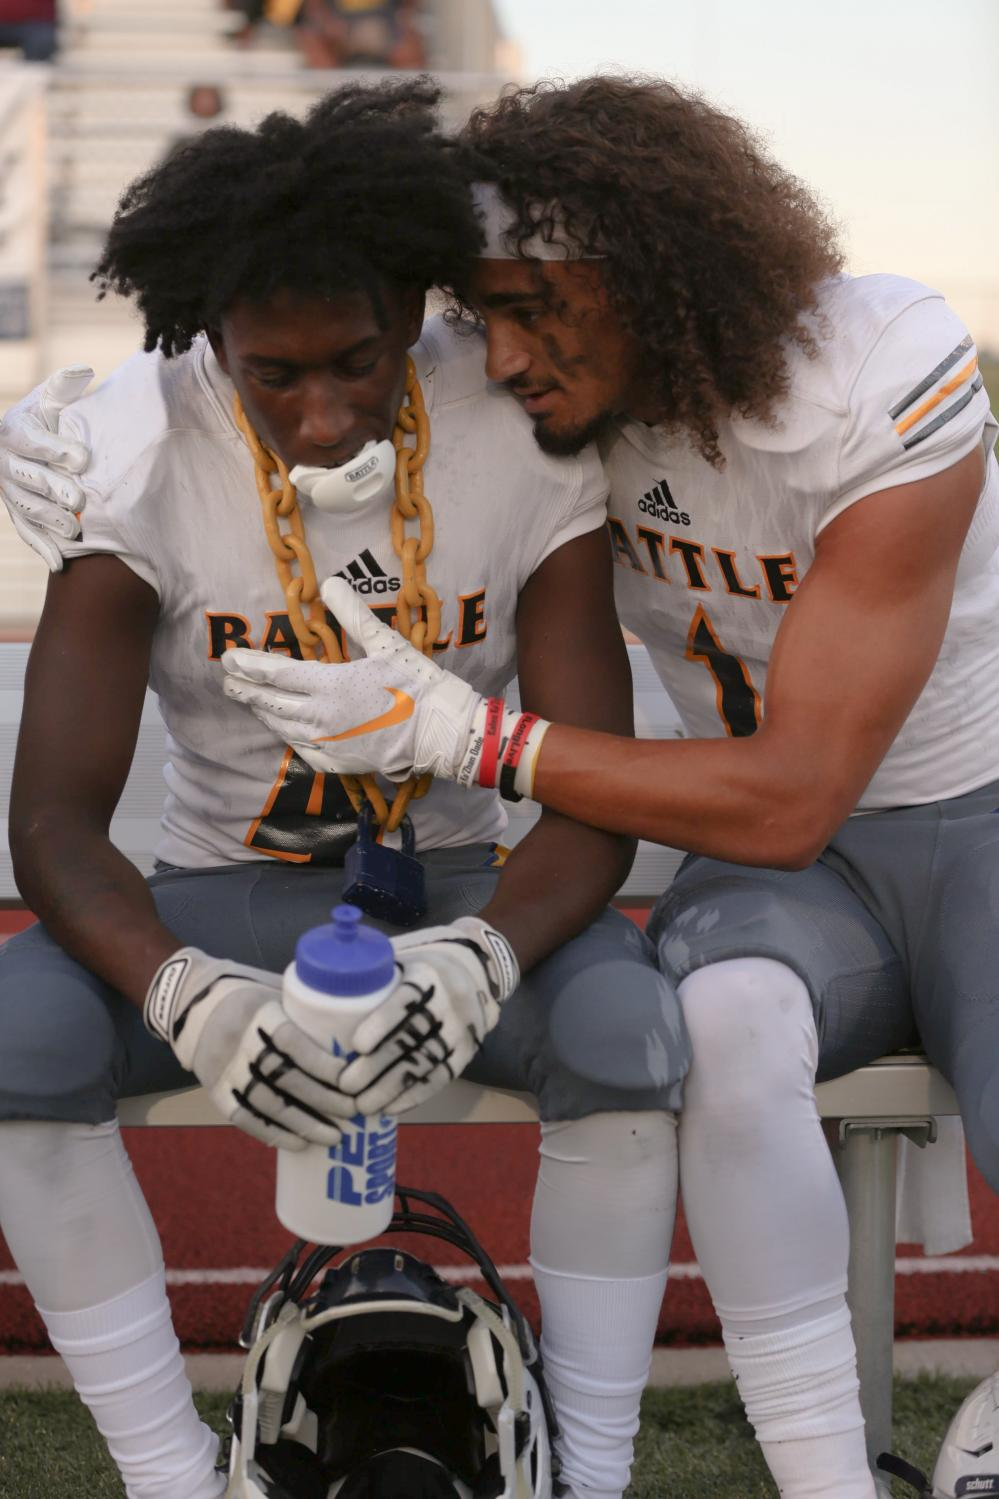 Battle senior cornerback and strong safety Quentarius Vaughn (left) wears the lockdown chain while senior cornerback and running back Trevonne Hicks (right) congratulates him at Smith-Cotton High School in Sedalia on Friday sept. 6, 2019. Quentarius was given the lockdown chain after getting an interception and scoring a touchdown on the same play.